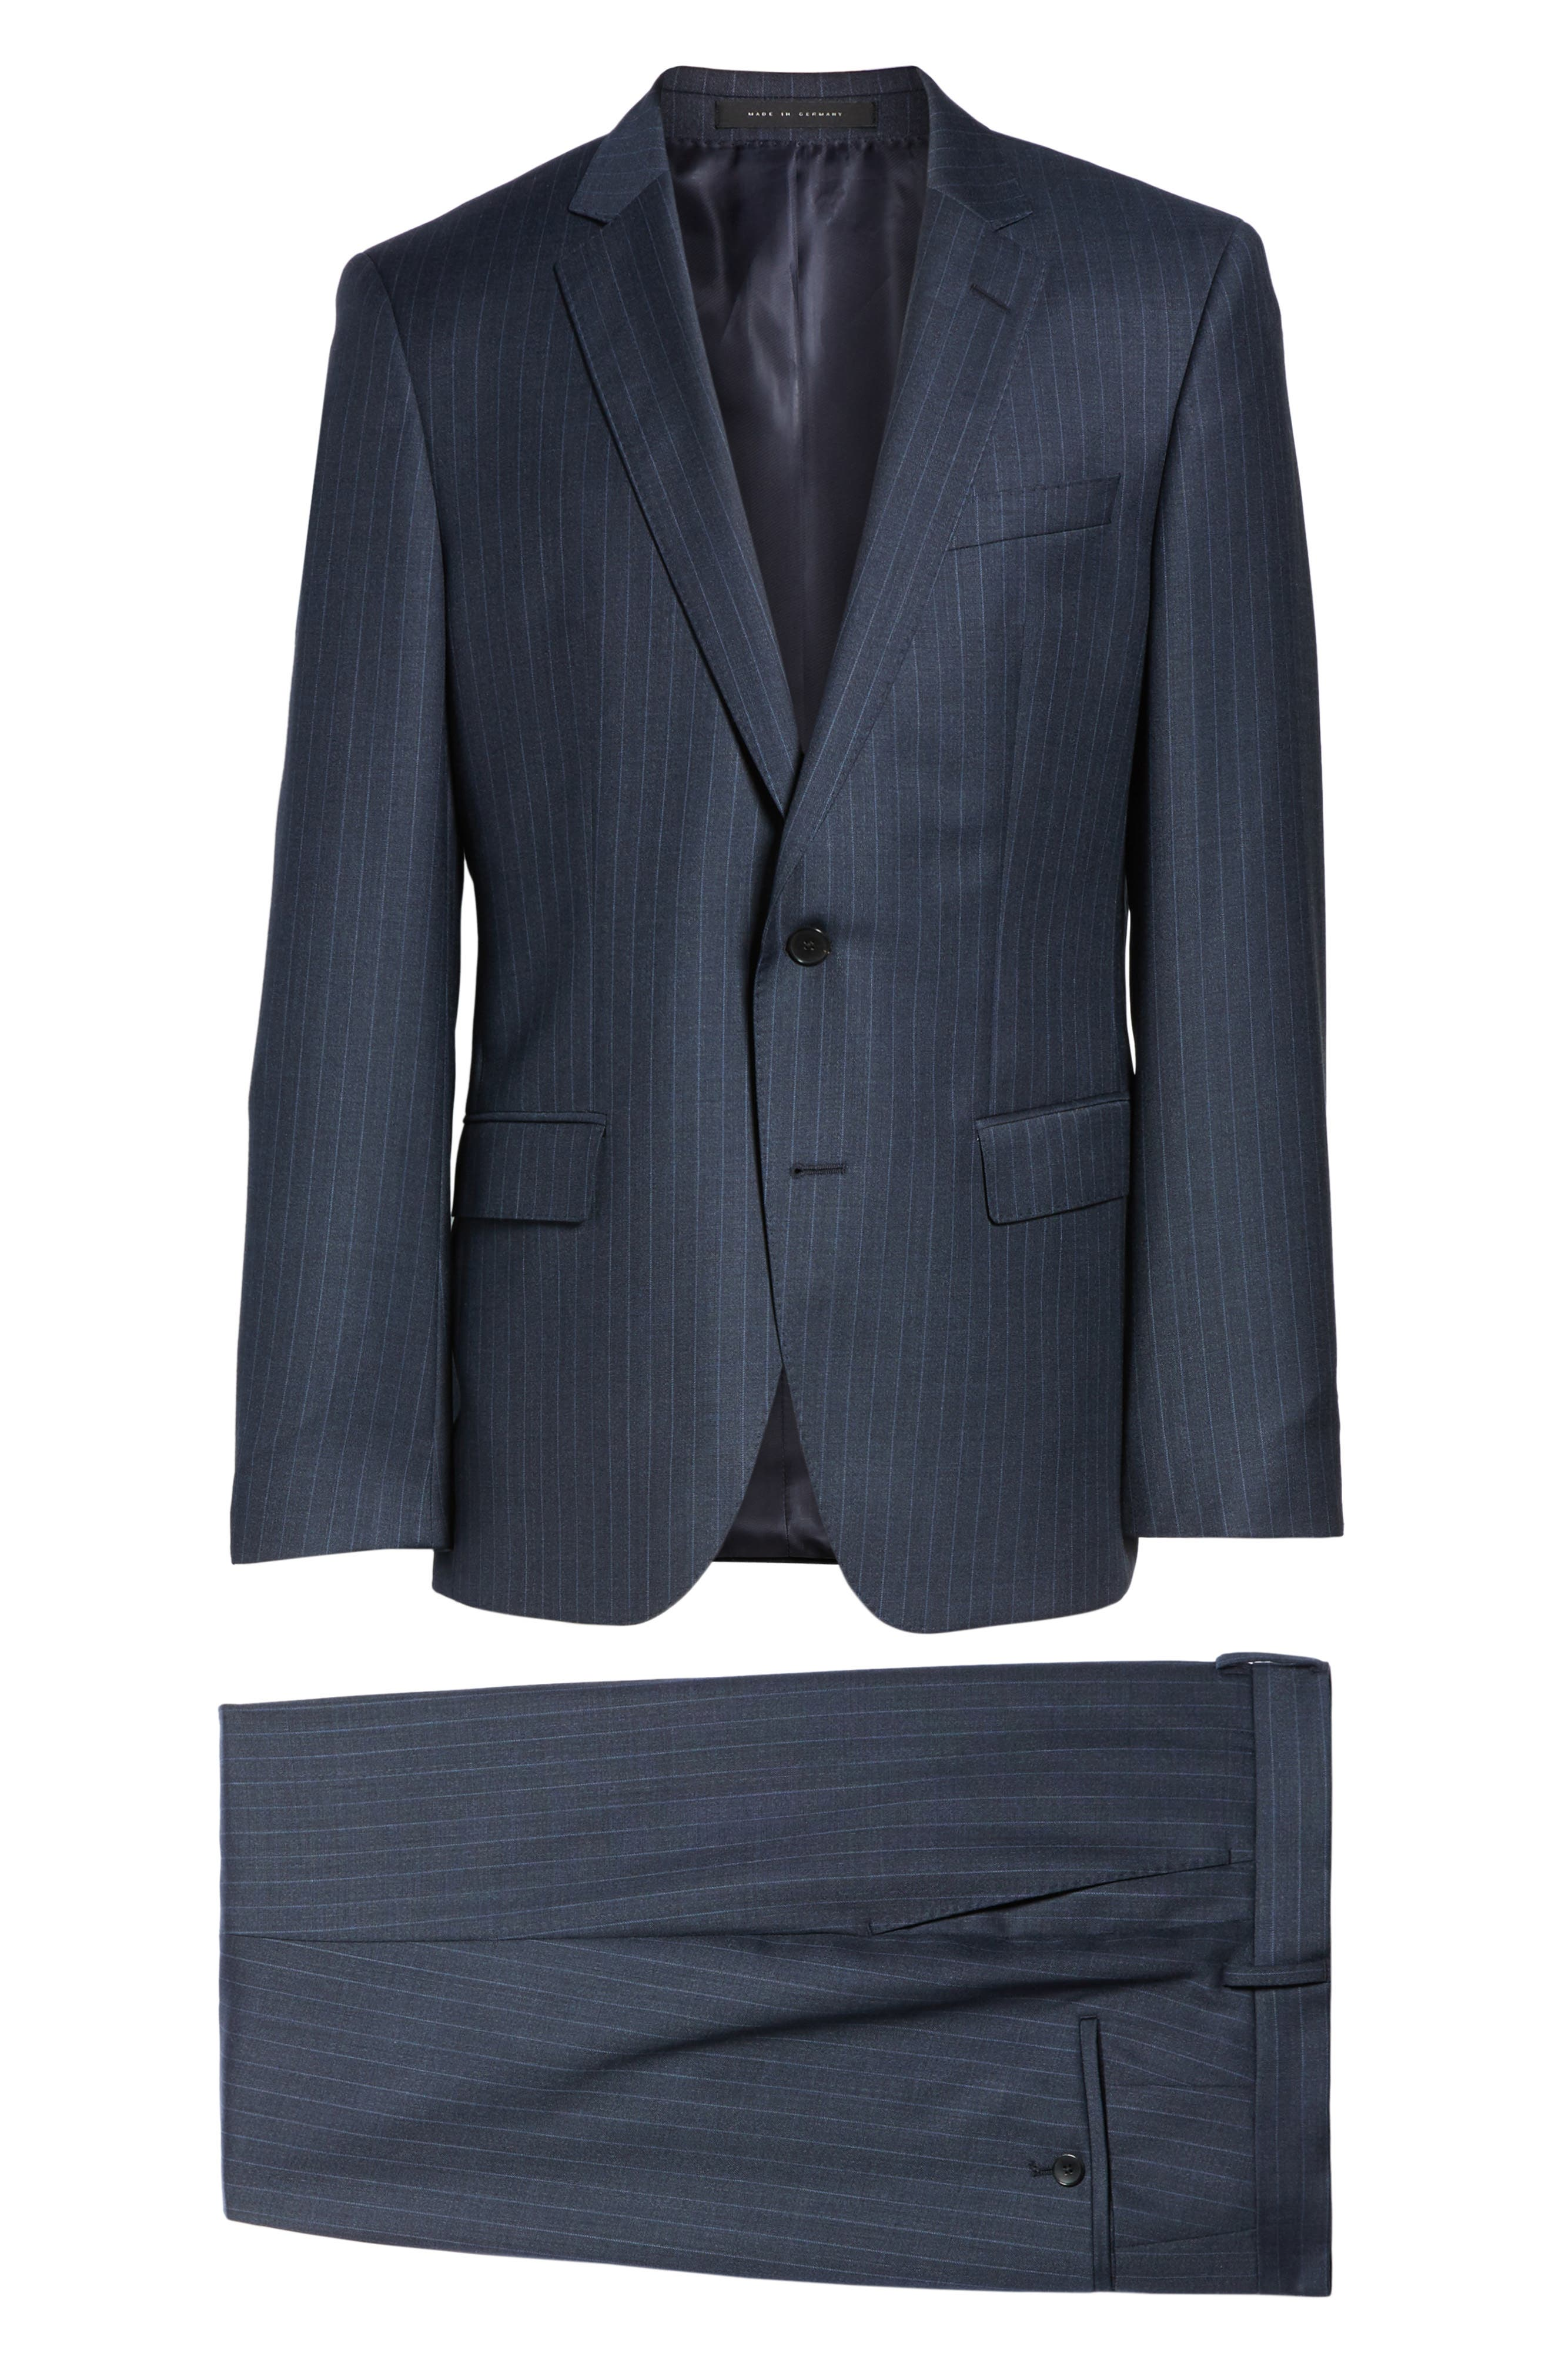 Huge/Genius Trim Fit Stripe Wool Suit,                             Alternate thumbnail 8, color,                             410